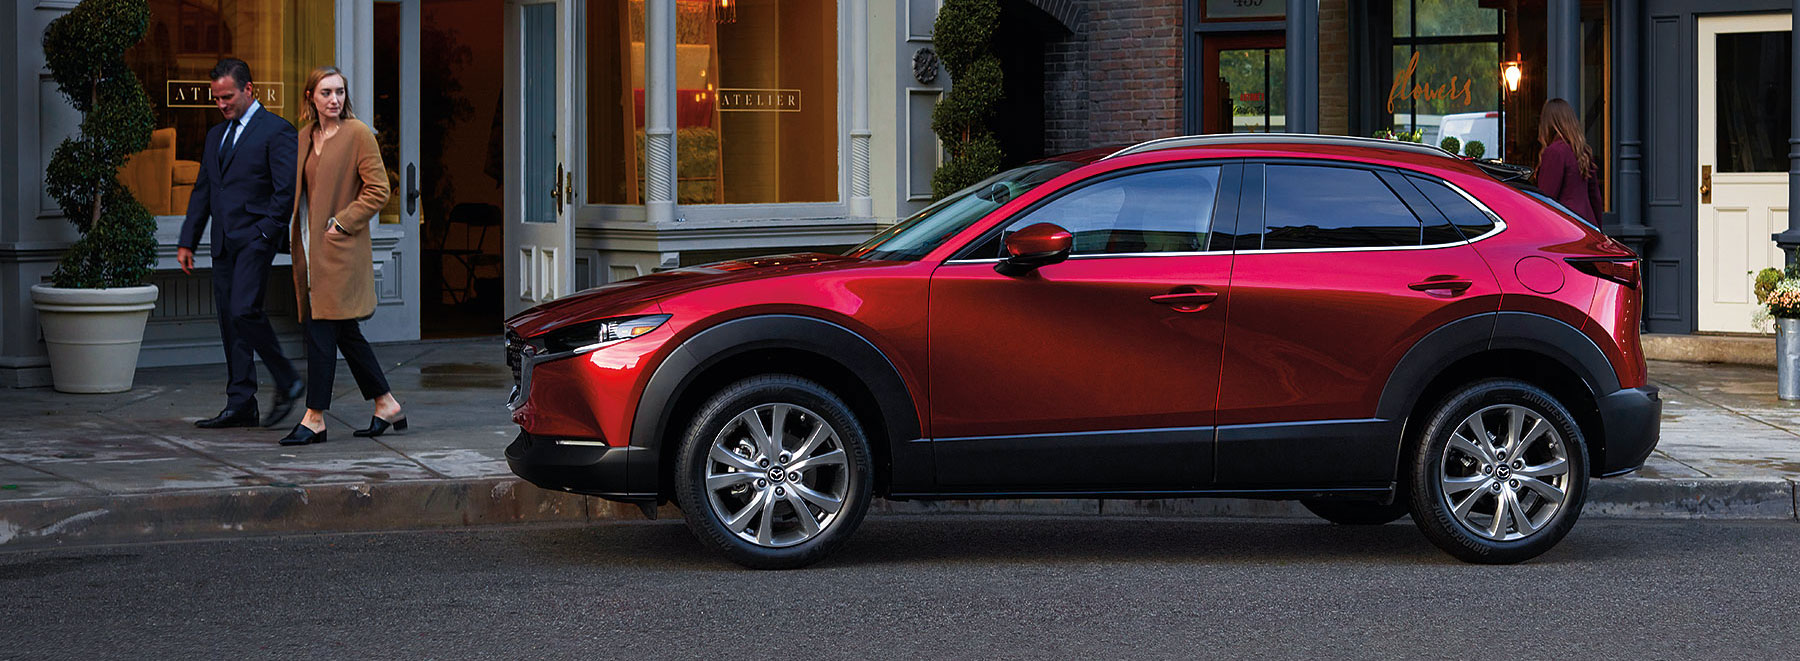 Mazda CX-30 SUV Red Driver Side Profile View